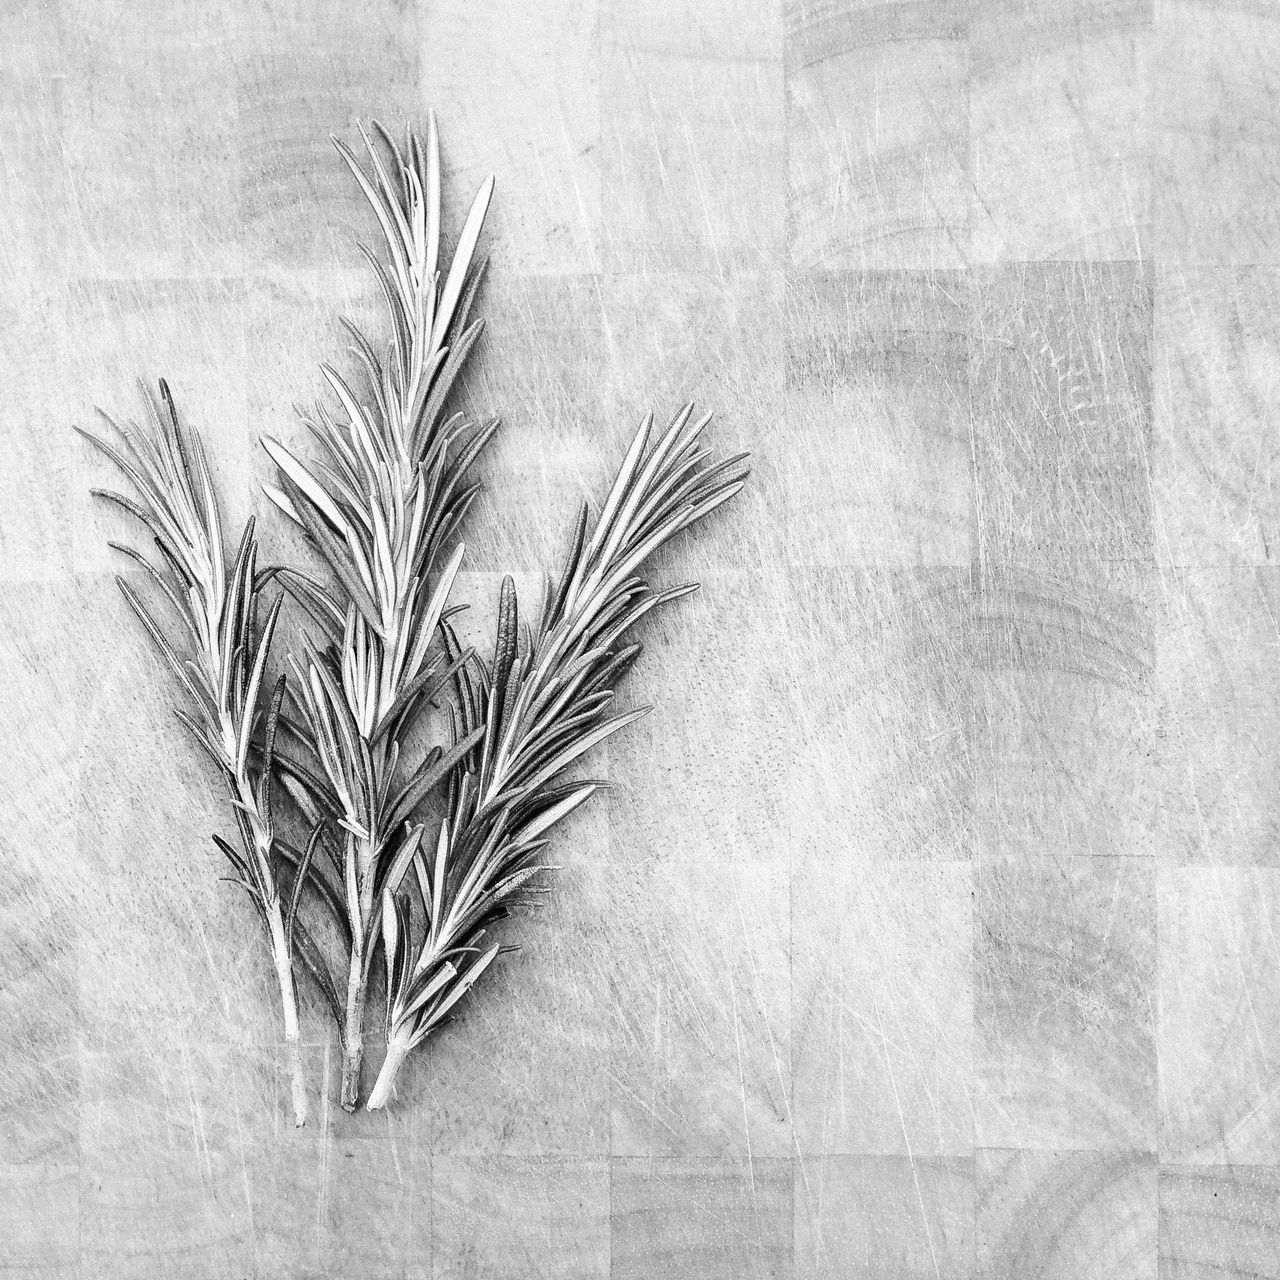 Rosemary on wooden chopping board using VSCO black and white film preset Analogue Photography Background Black And White Chopping Board Close-up Film Effect Herb Herbs High Angle View Leaf Leaves Nature Plant Rosemary Sprig Sprigs Surface VSCO Wood Wooden